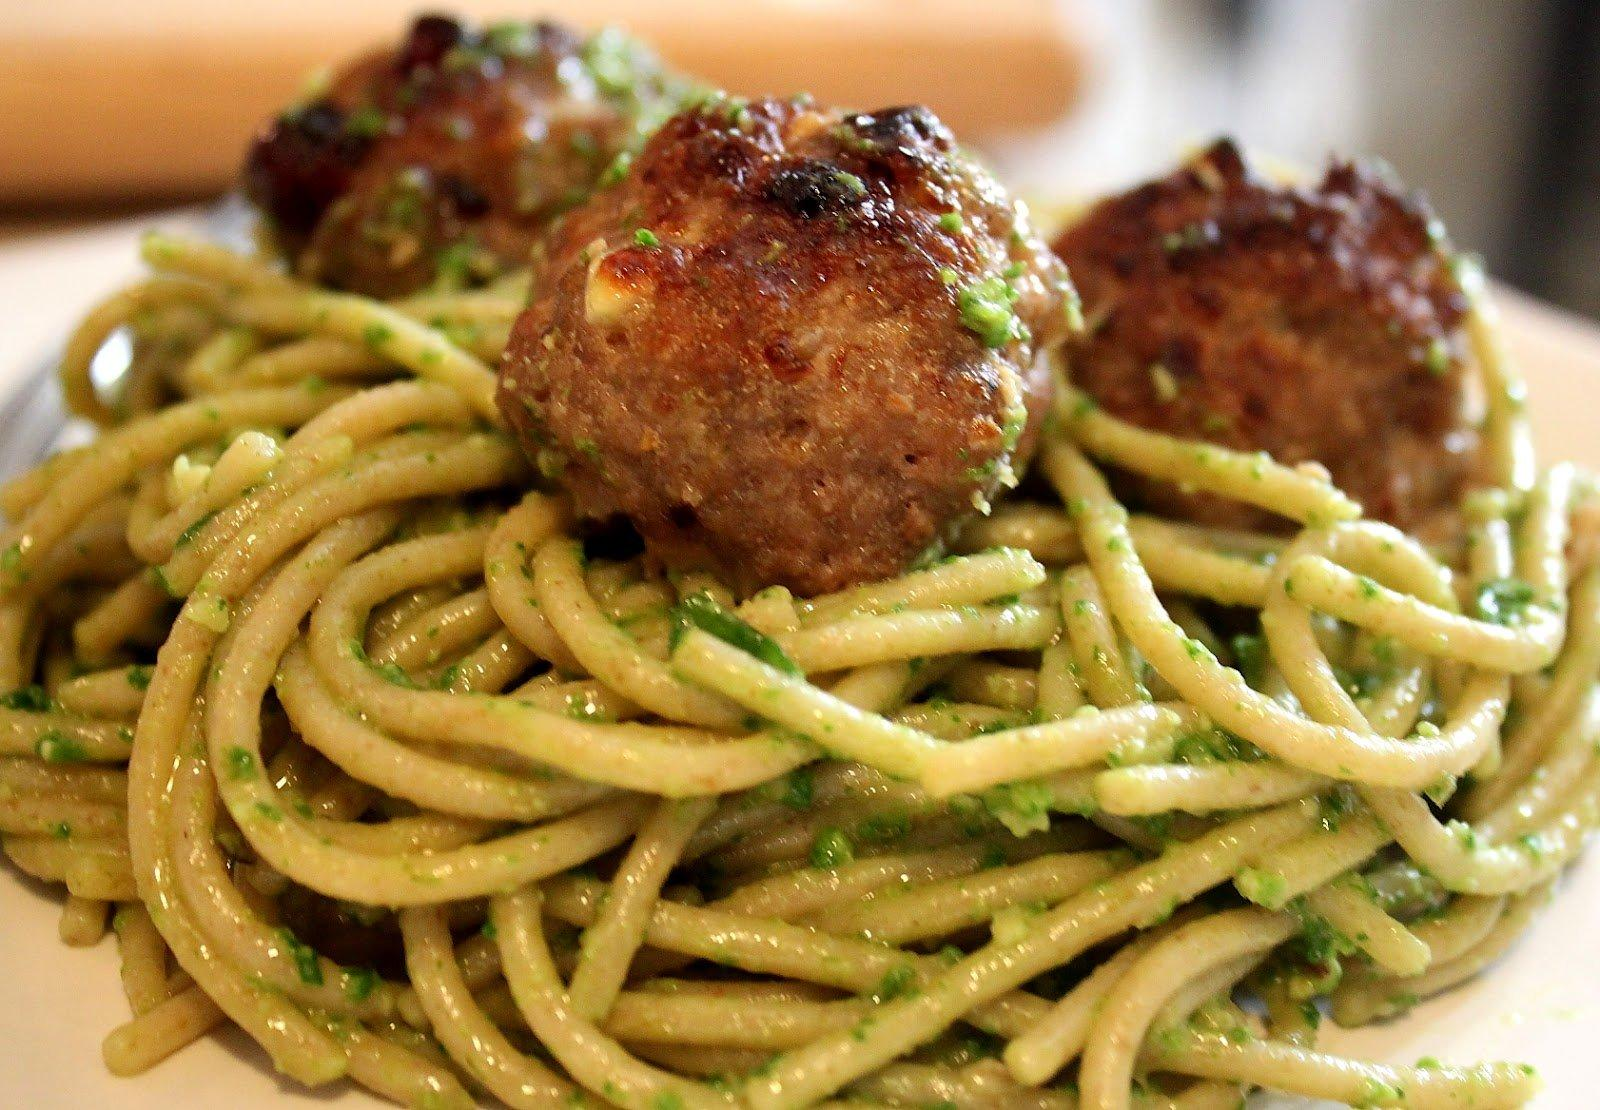 Easiest Meatballs Recipes That Will Make A Cooking Guru Out Of You